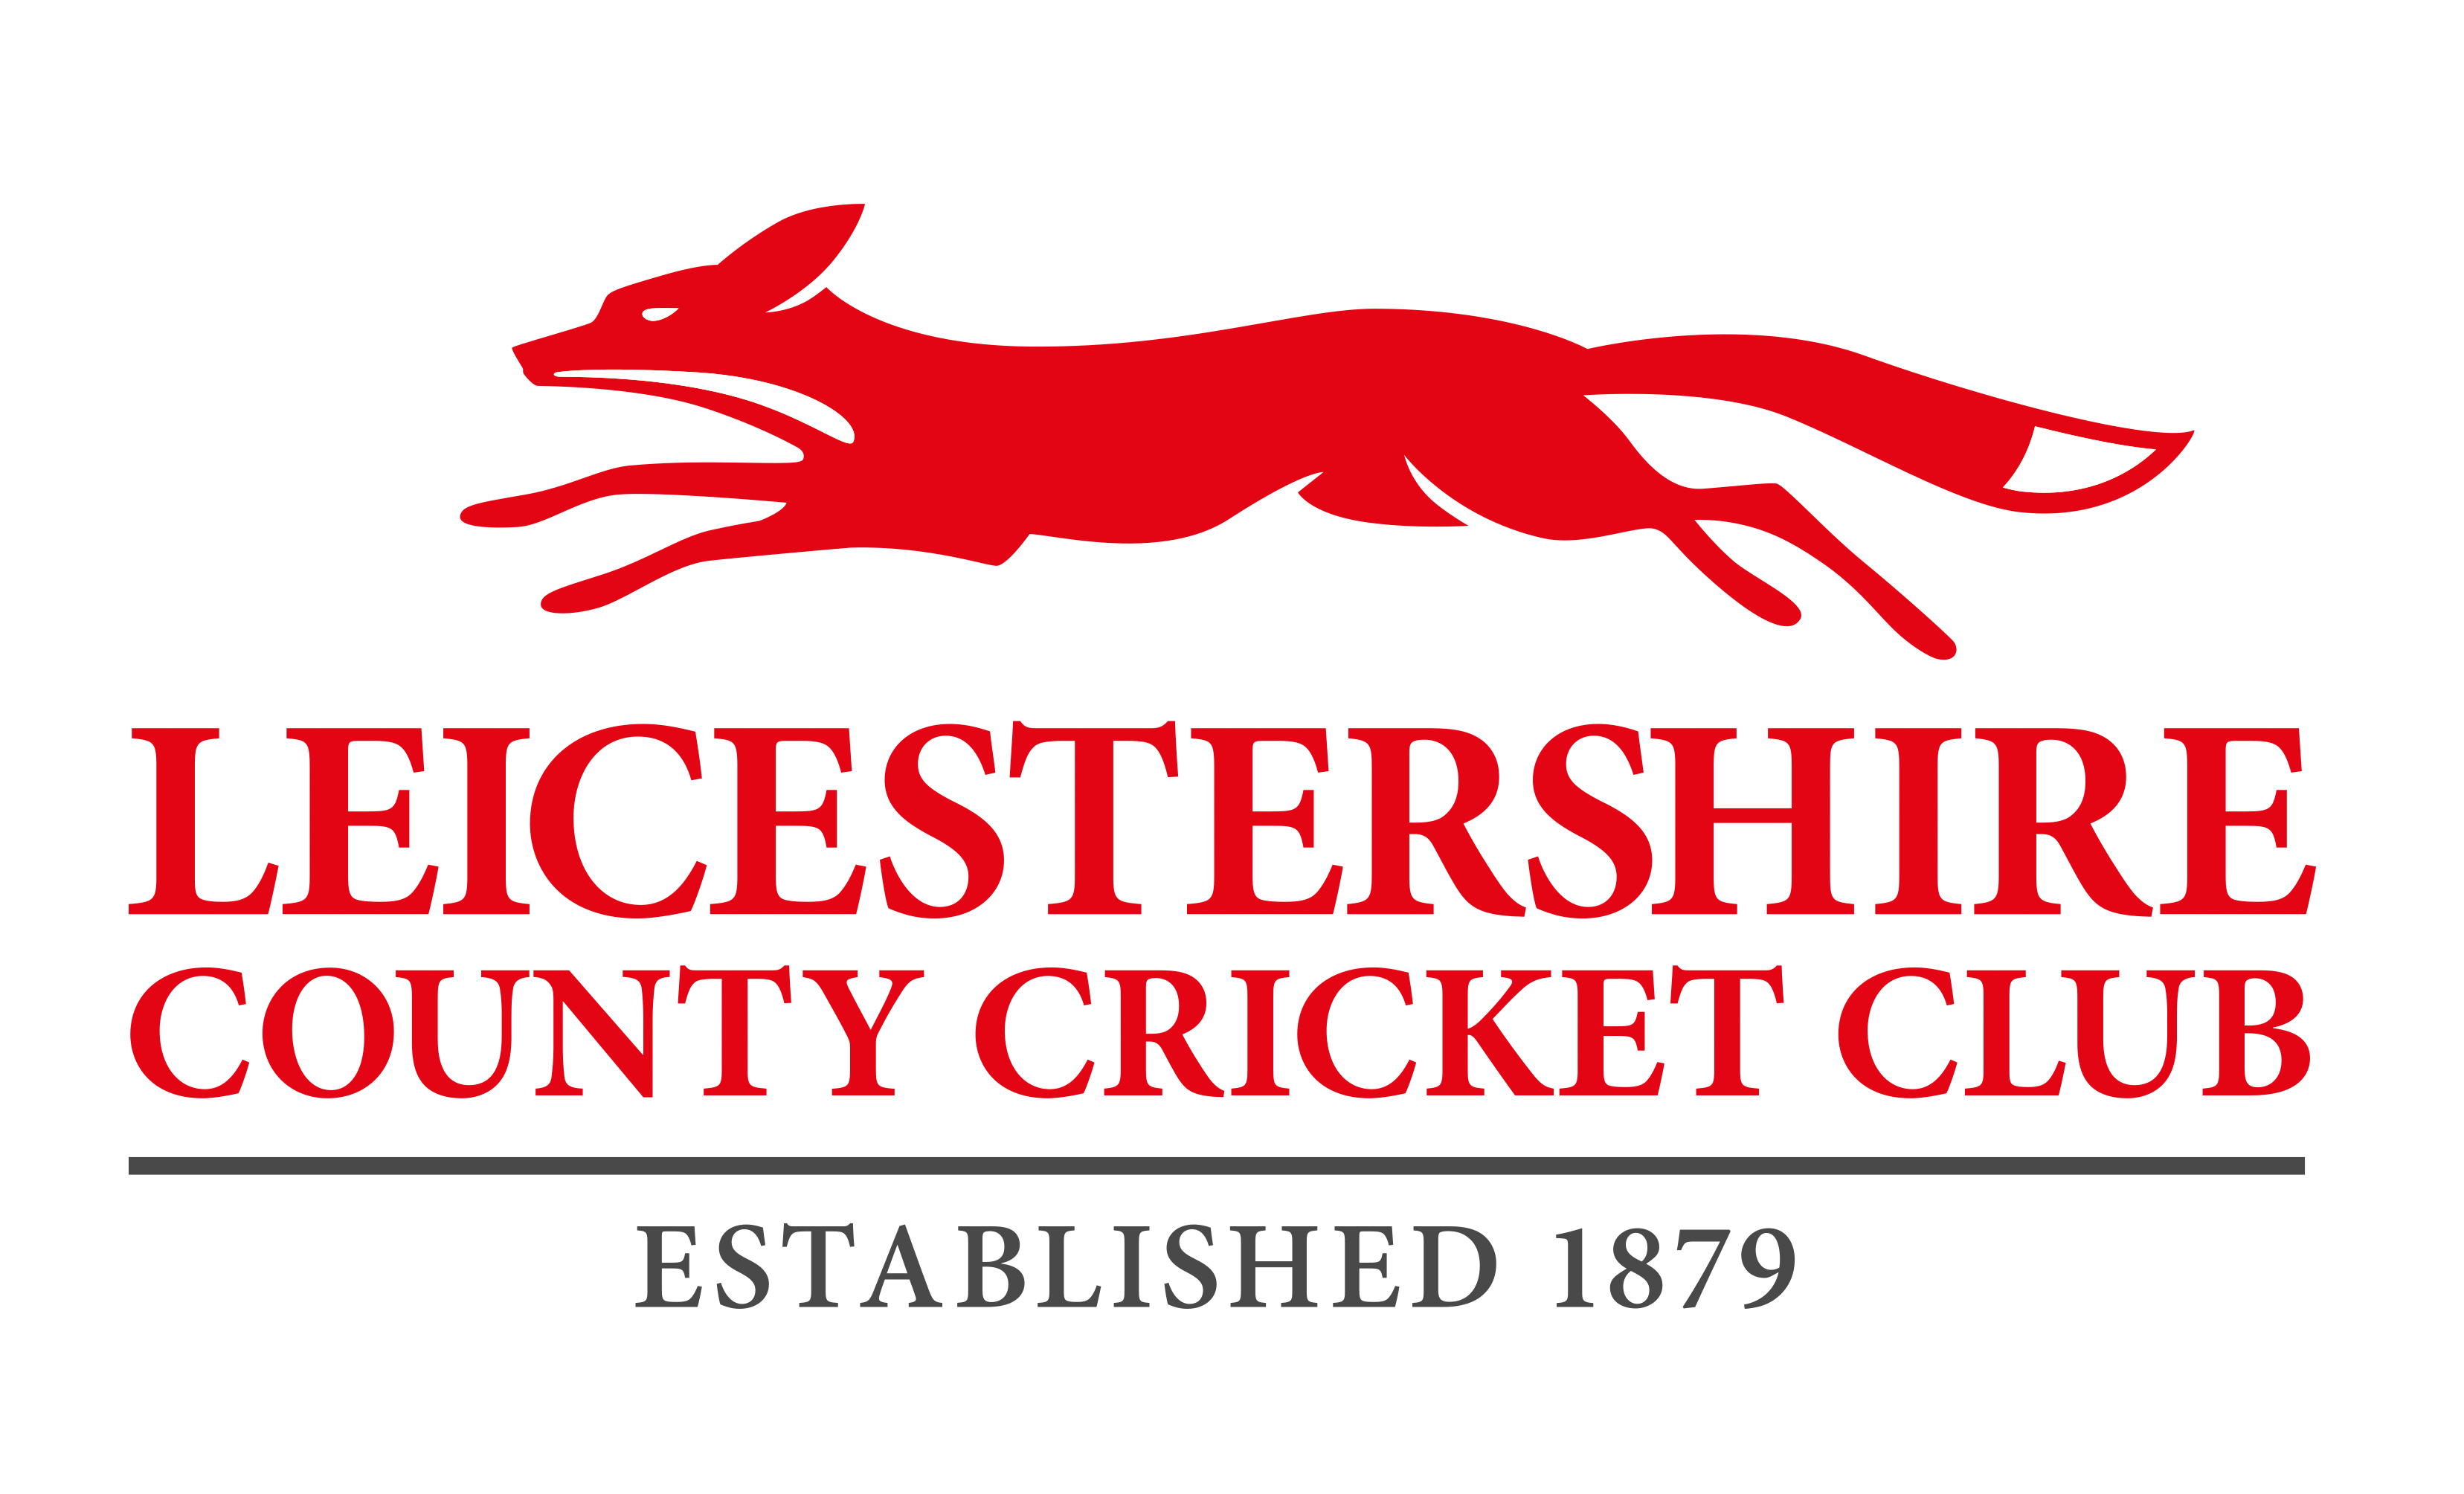 Leicestershire CCC's logo